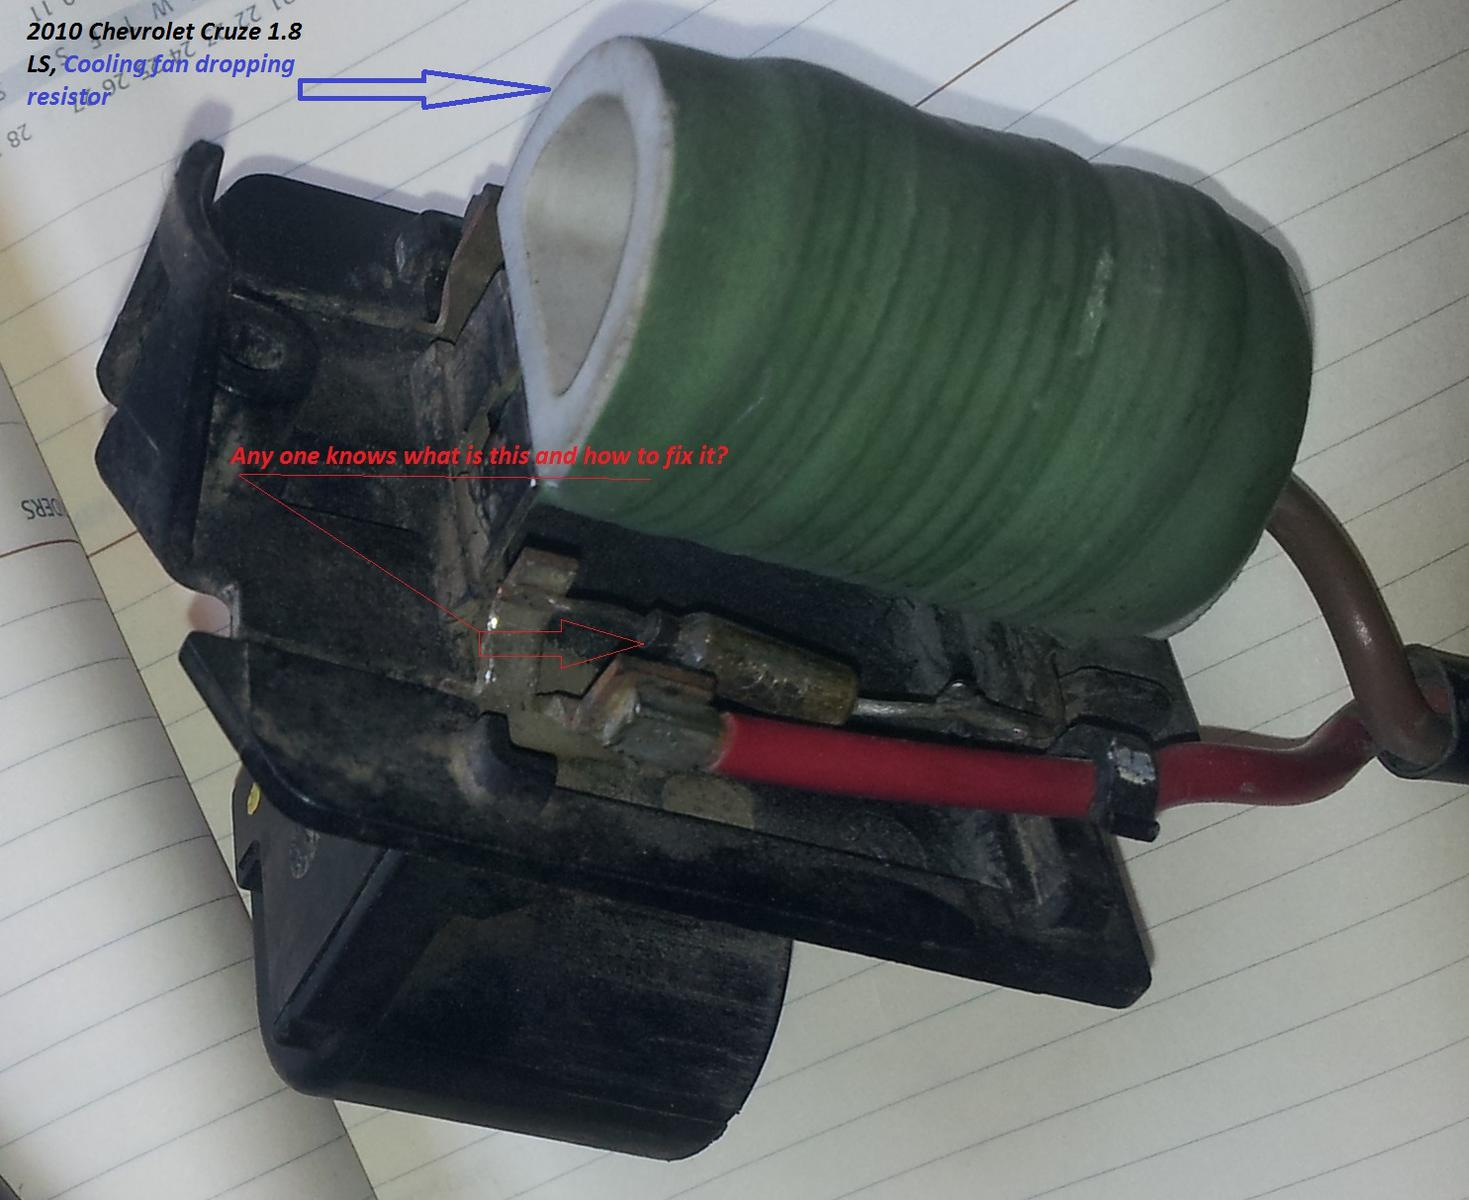 hight resolution of cooling fan dropping resistor problem in 2010 cruze 1 8ls 2011 chevy cruze cooling fan wiring diagram